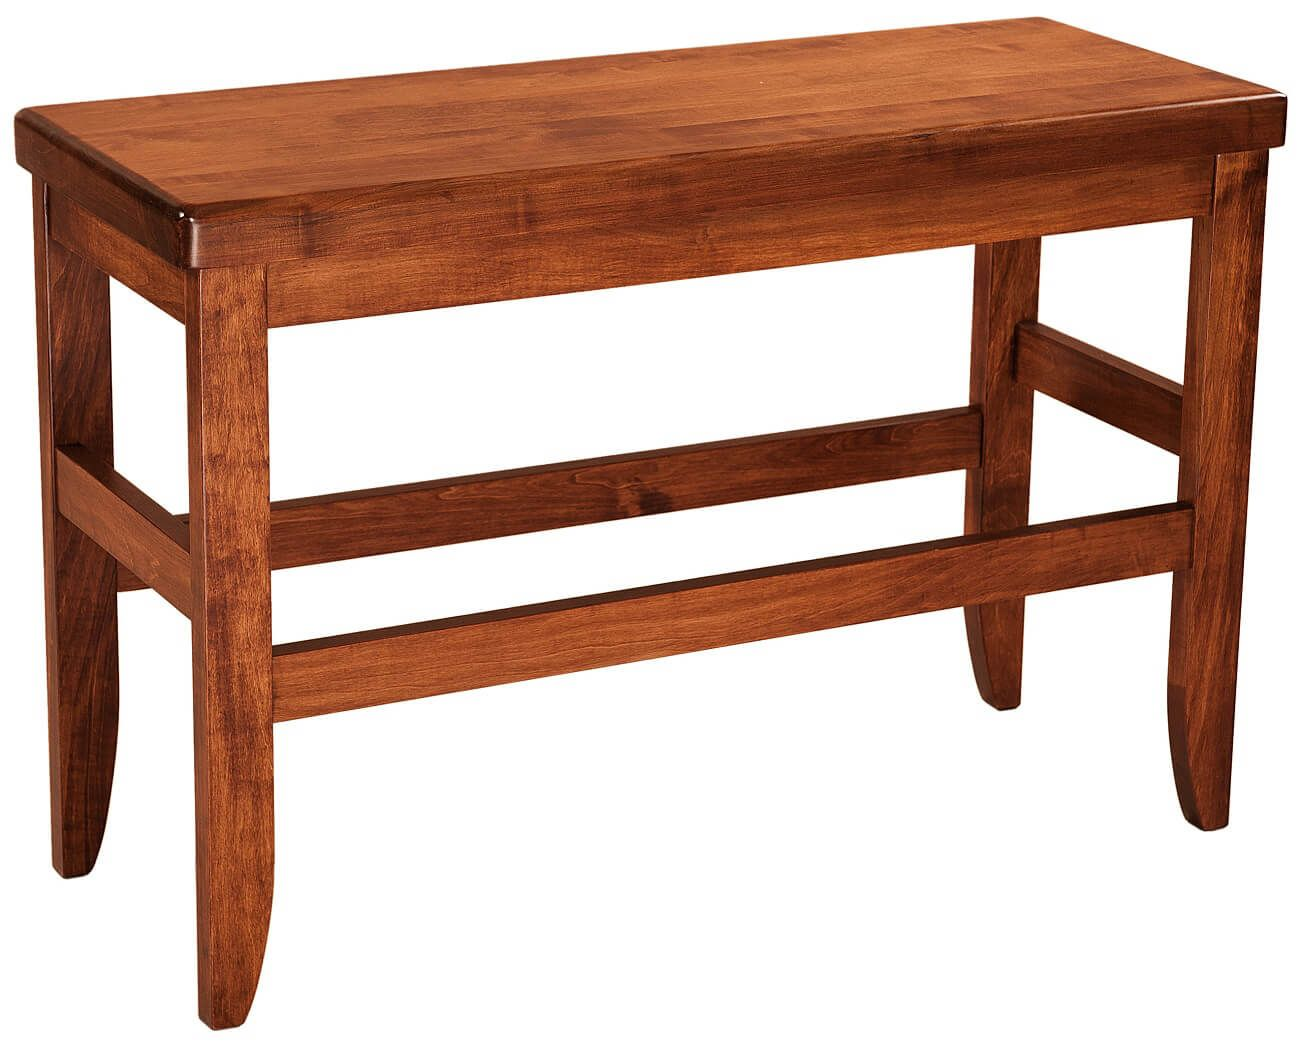 Sibbick Bar Height Kitchen Bench Countryside Amish Furniture